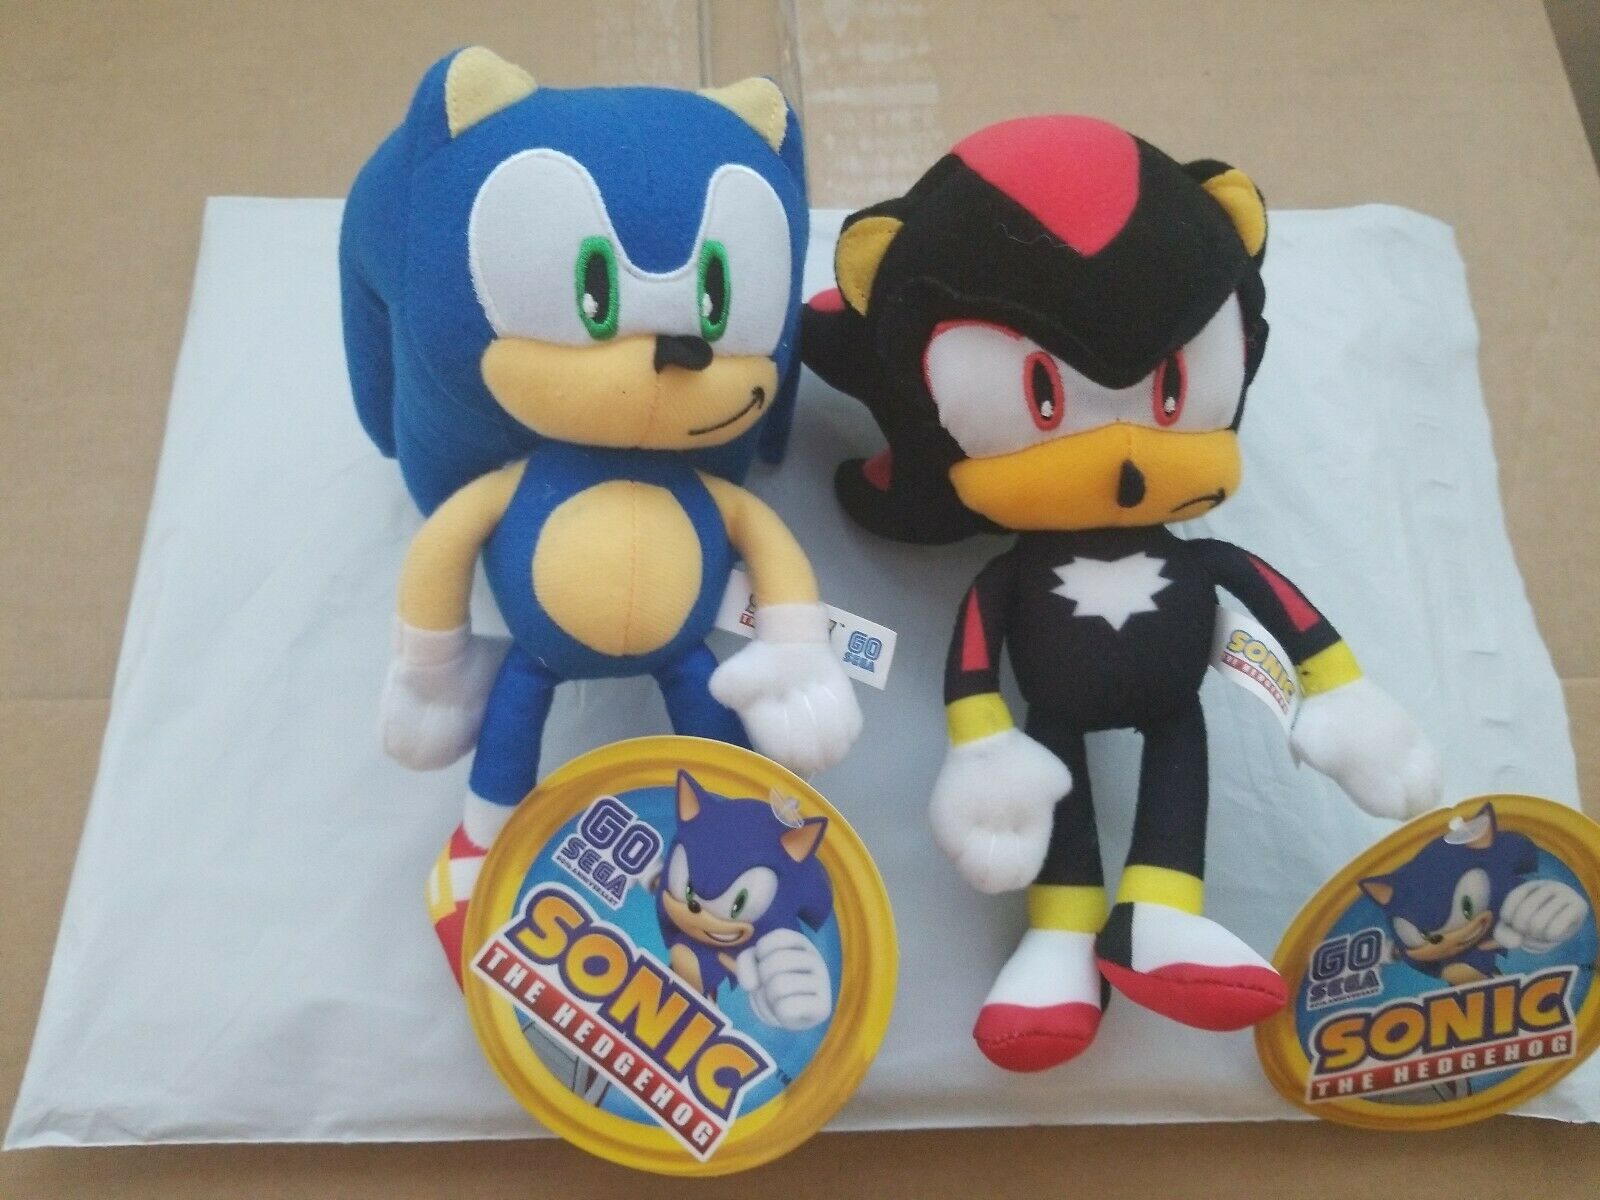 Sonic The Hedgehog 8 Party Pack For Sale Online Ebay